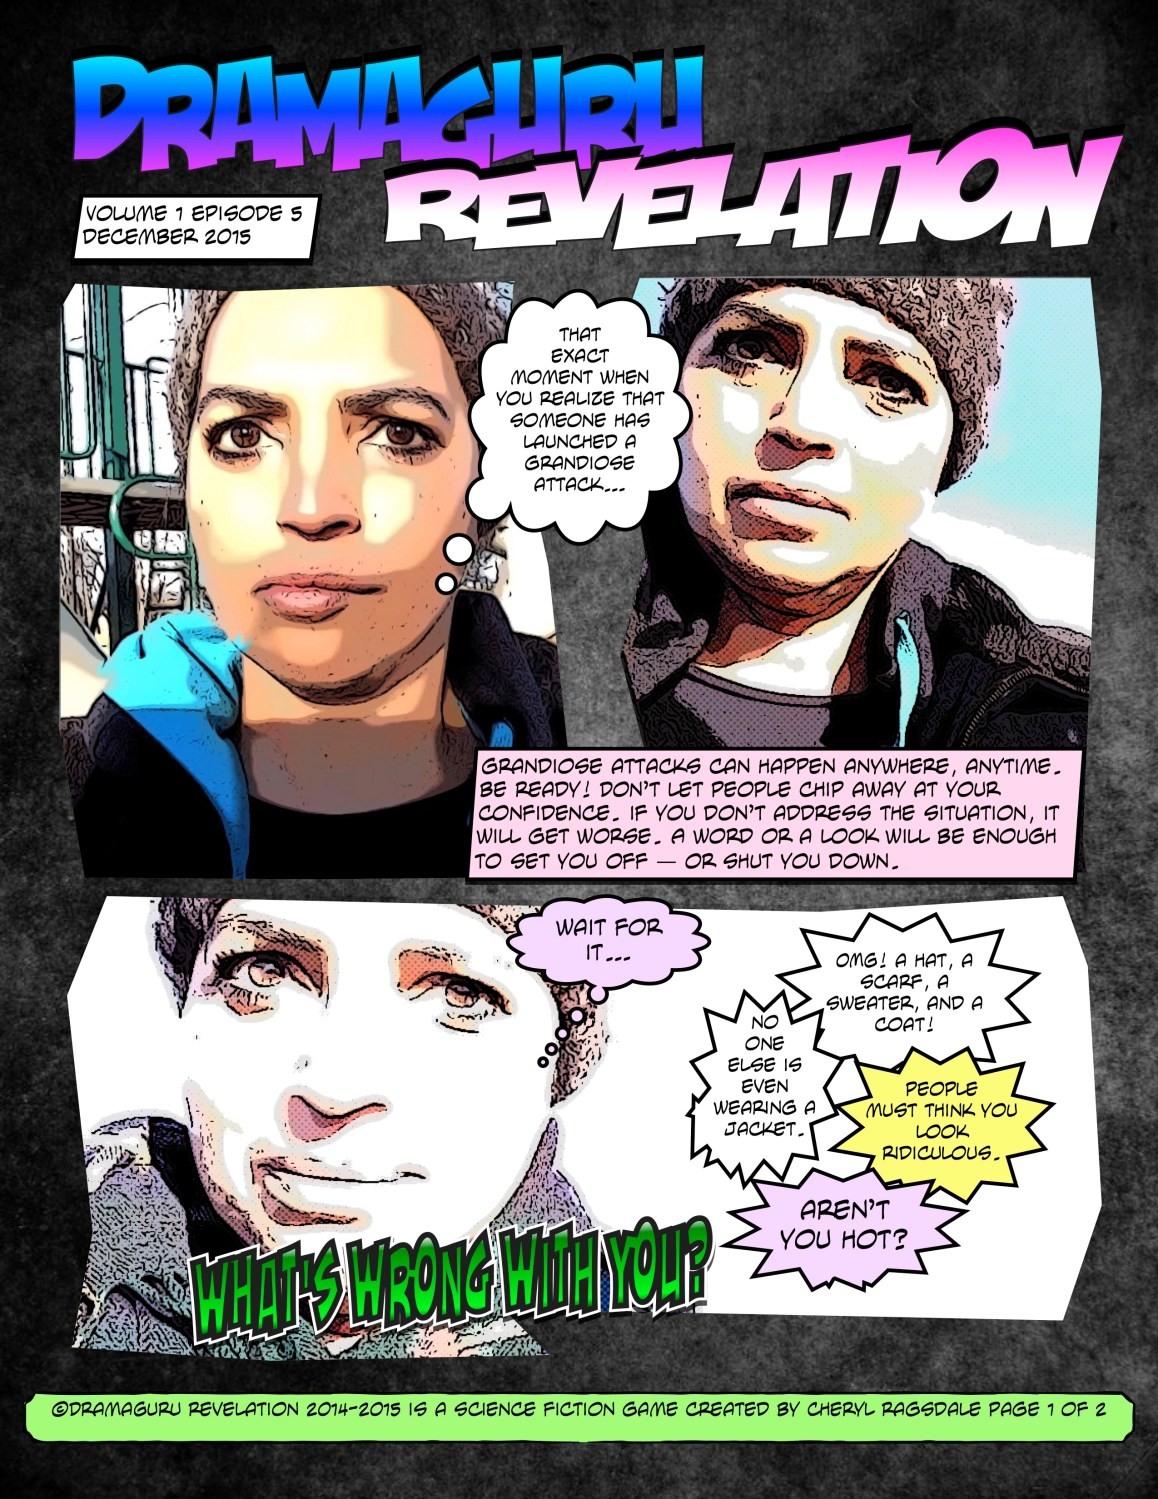 DramaGuru Revelation comic book aren't you hot? Vol. 1 Ep5 page_1